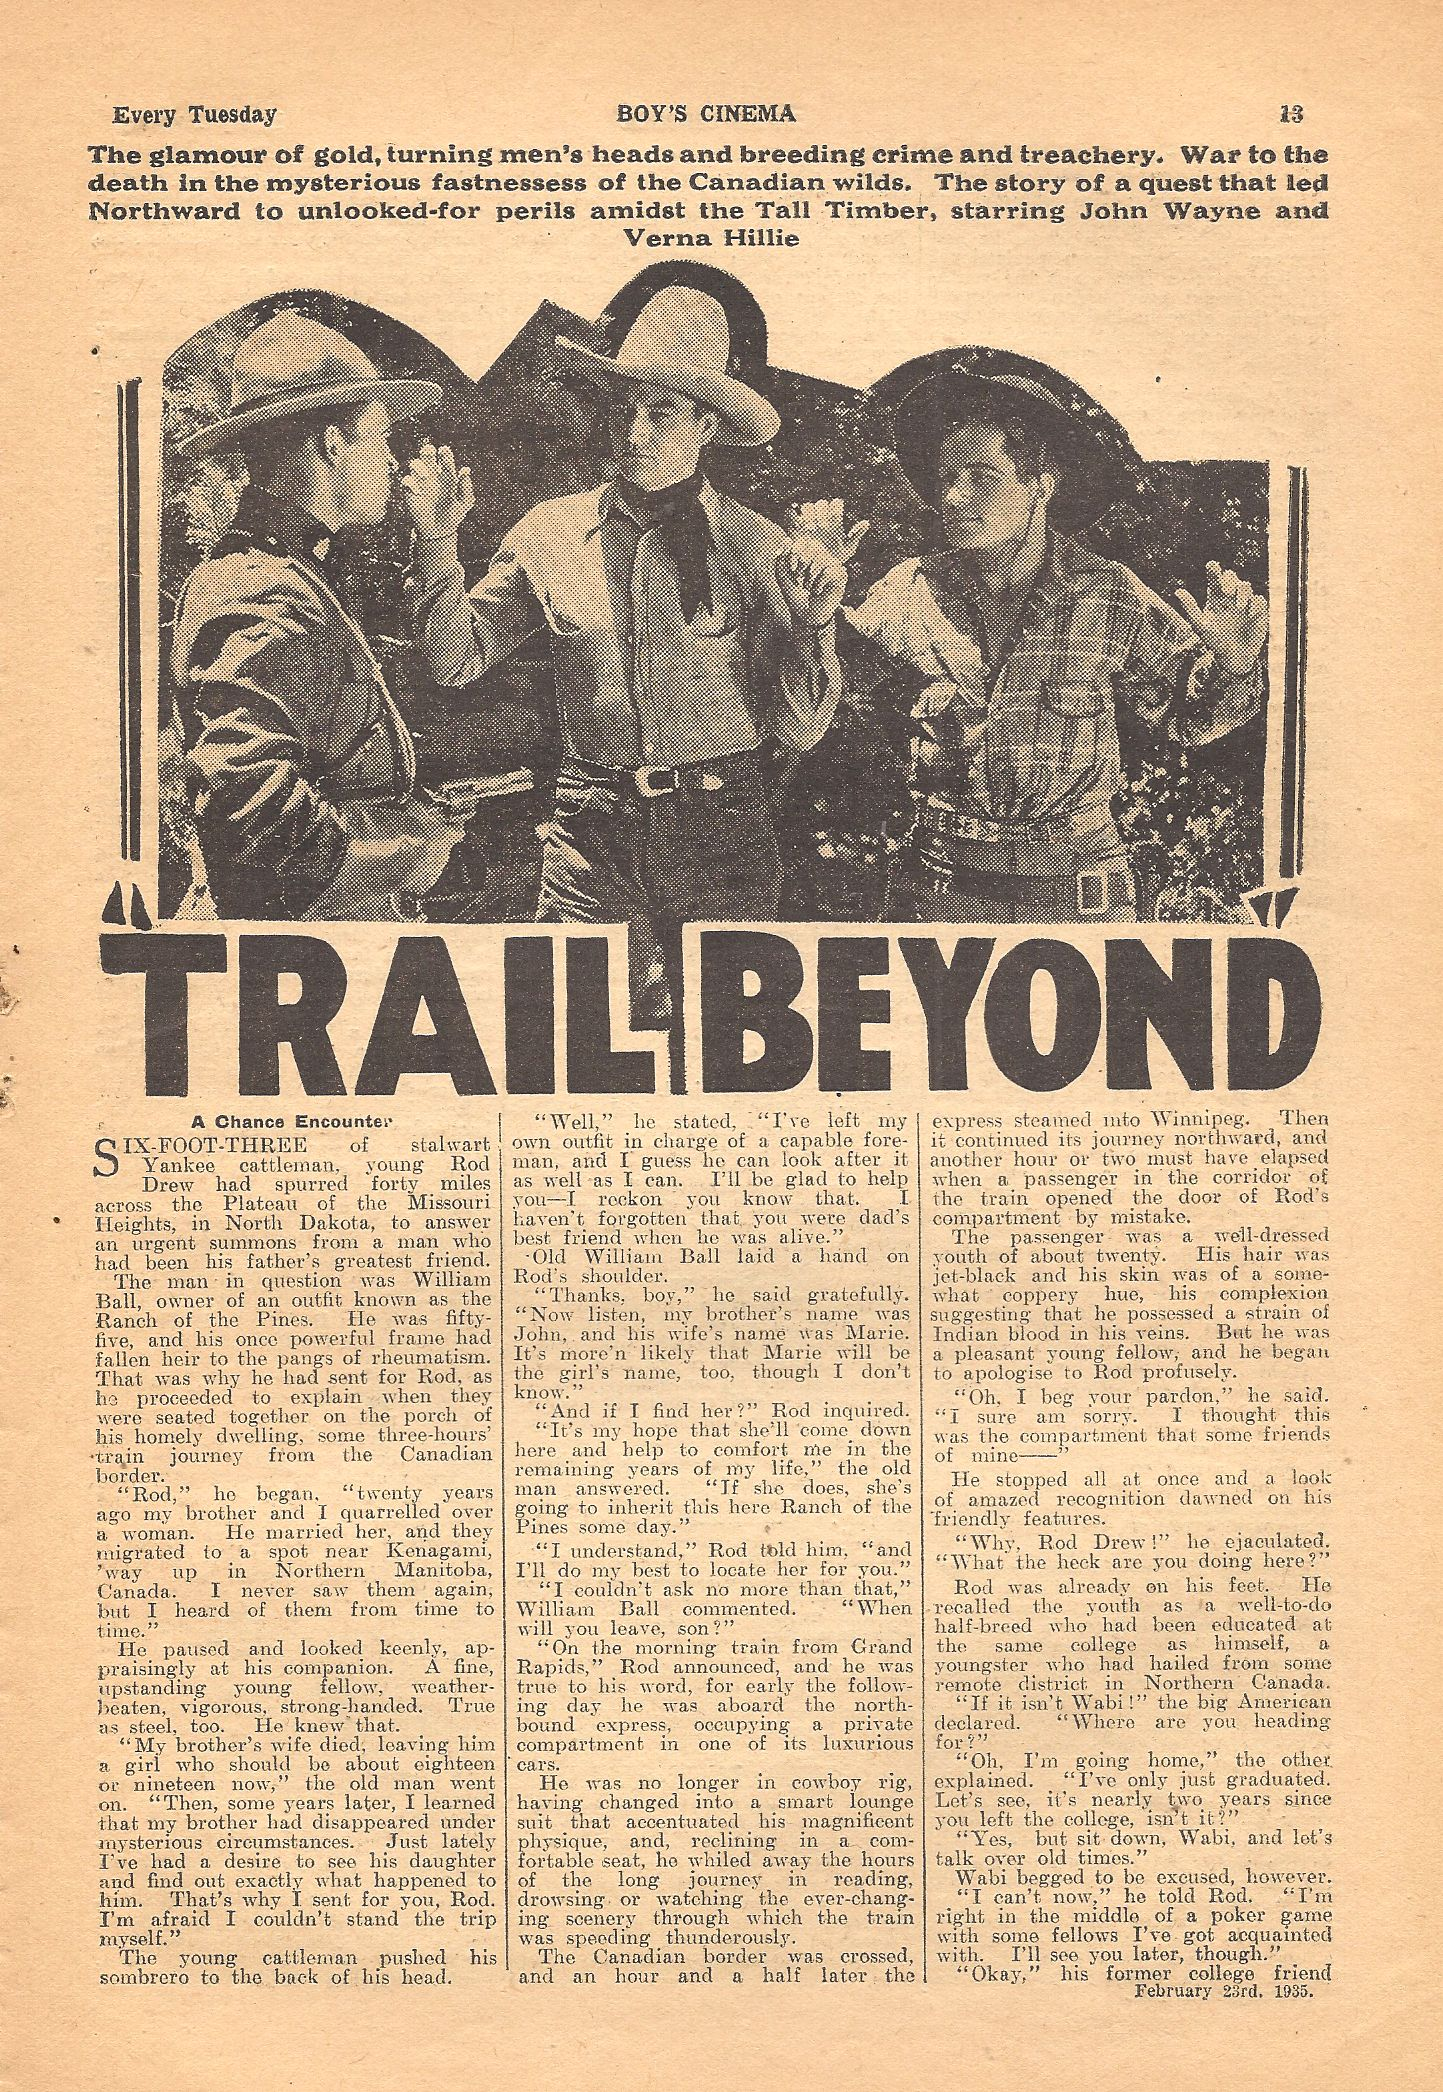 John Wayne, Noah Beery Jr., and Eddie Parker in The Trail Beyond (1934)